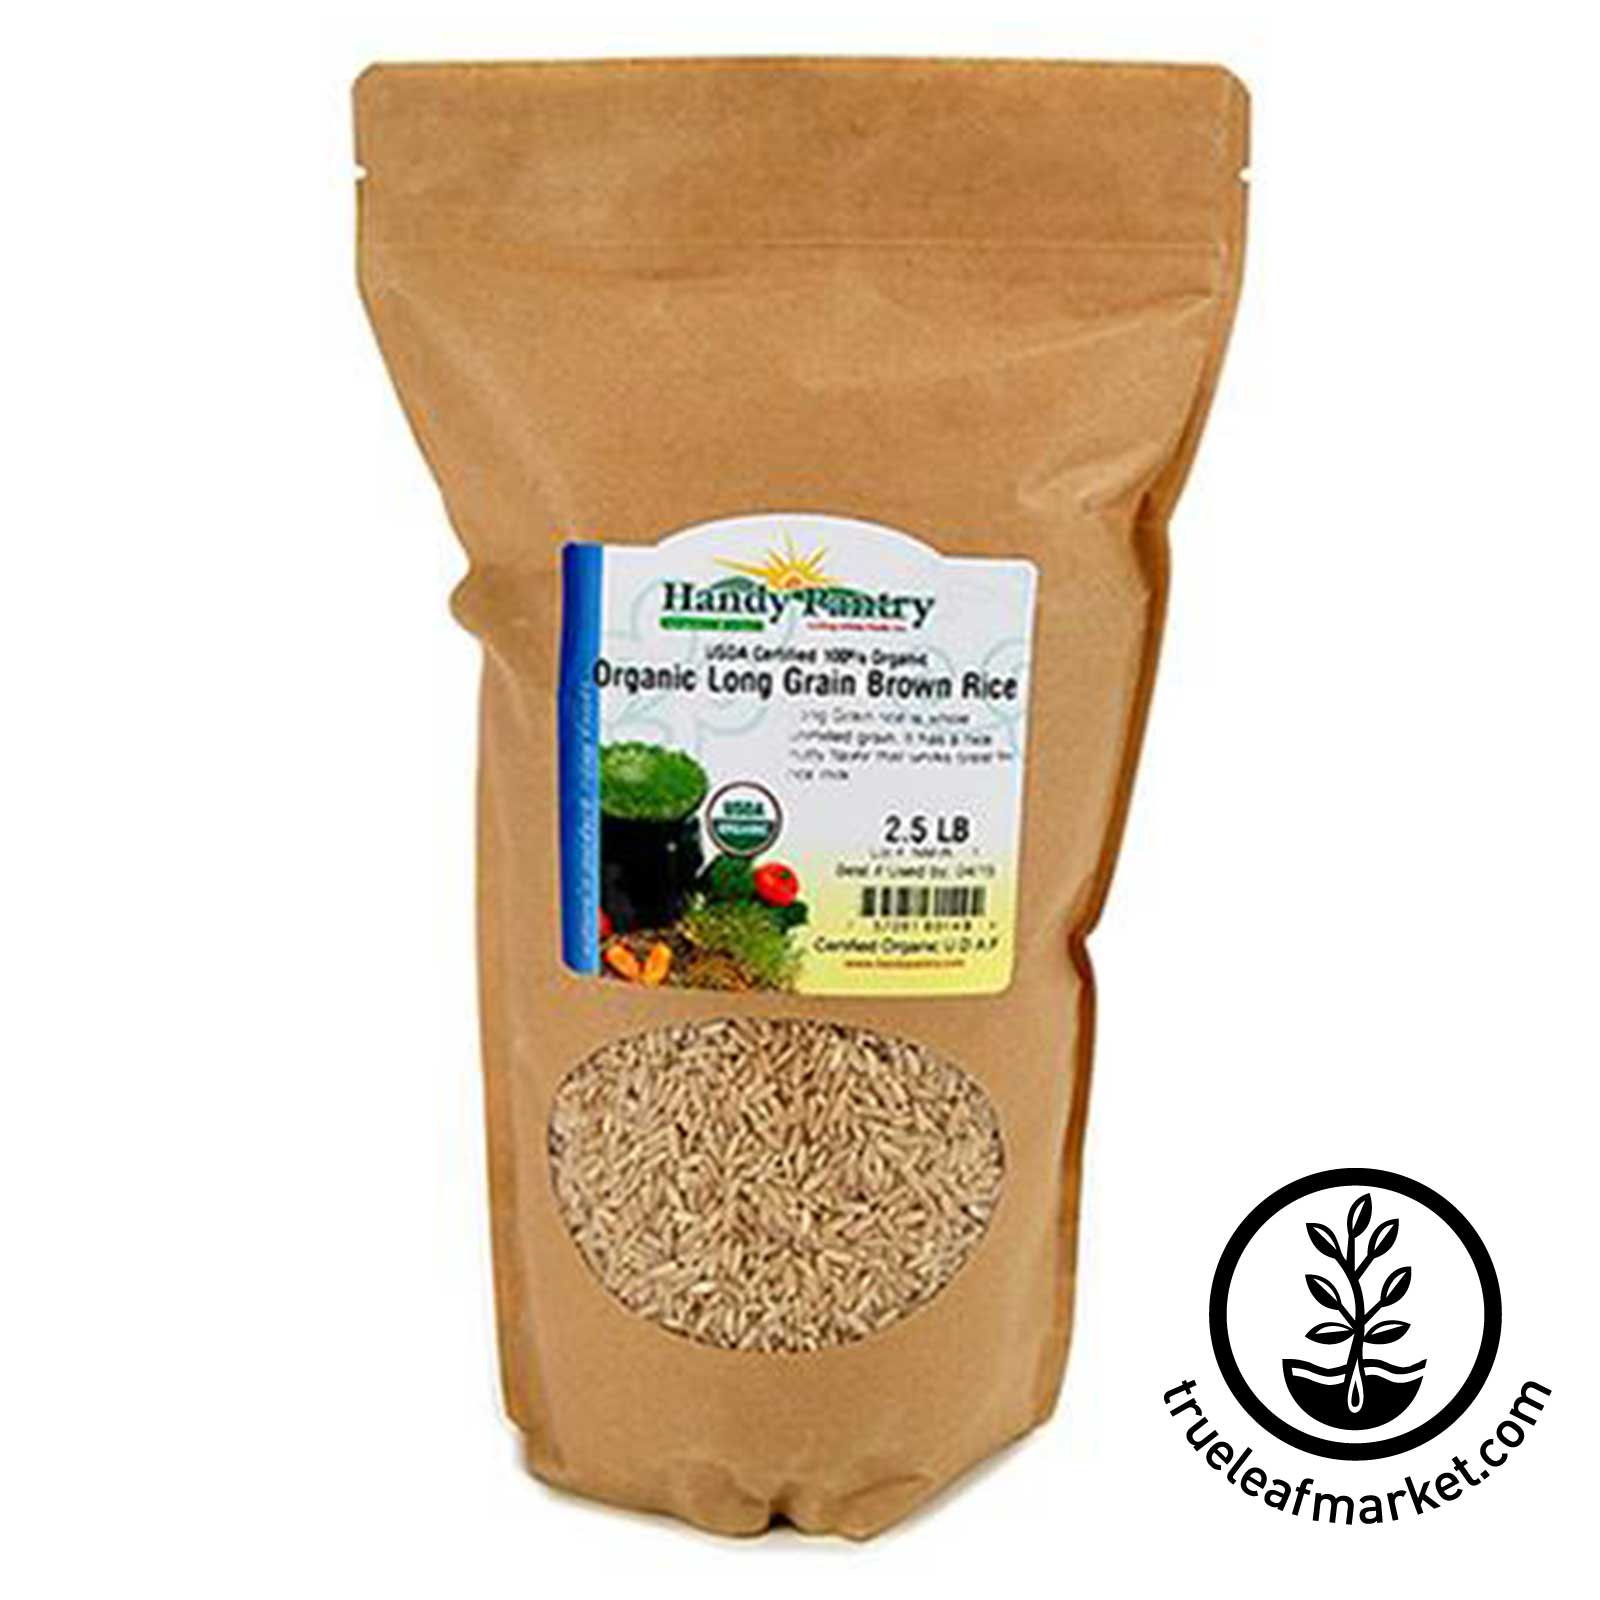 Organic Long Brown Rice - 2.5 lbs